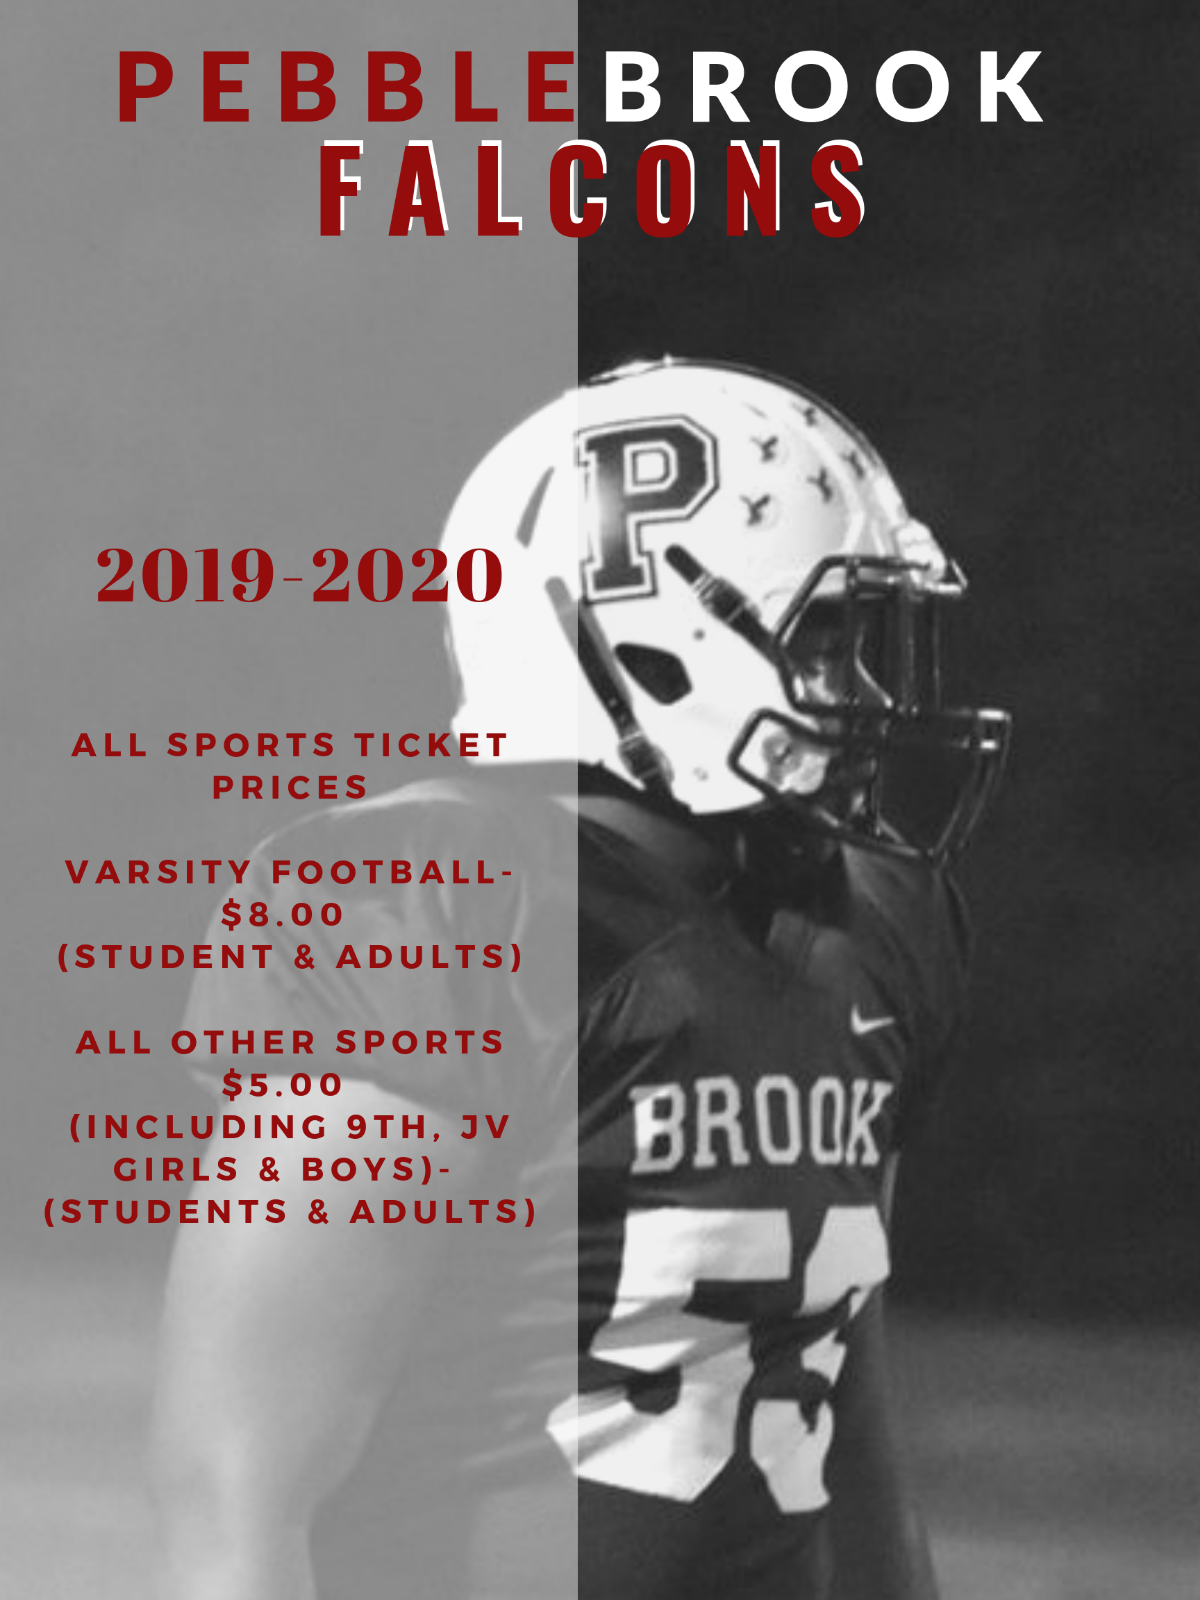 2019-2020 All Sports Ticket Prices